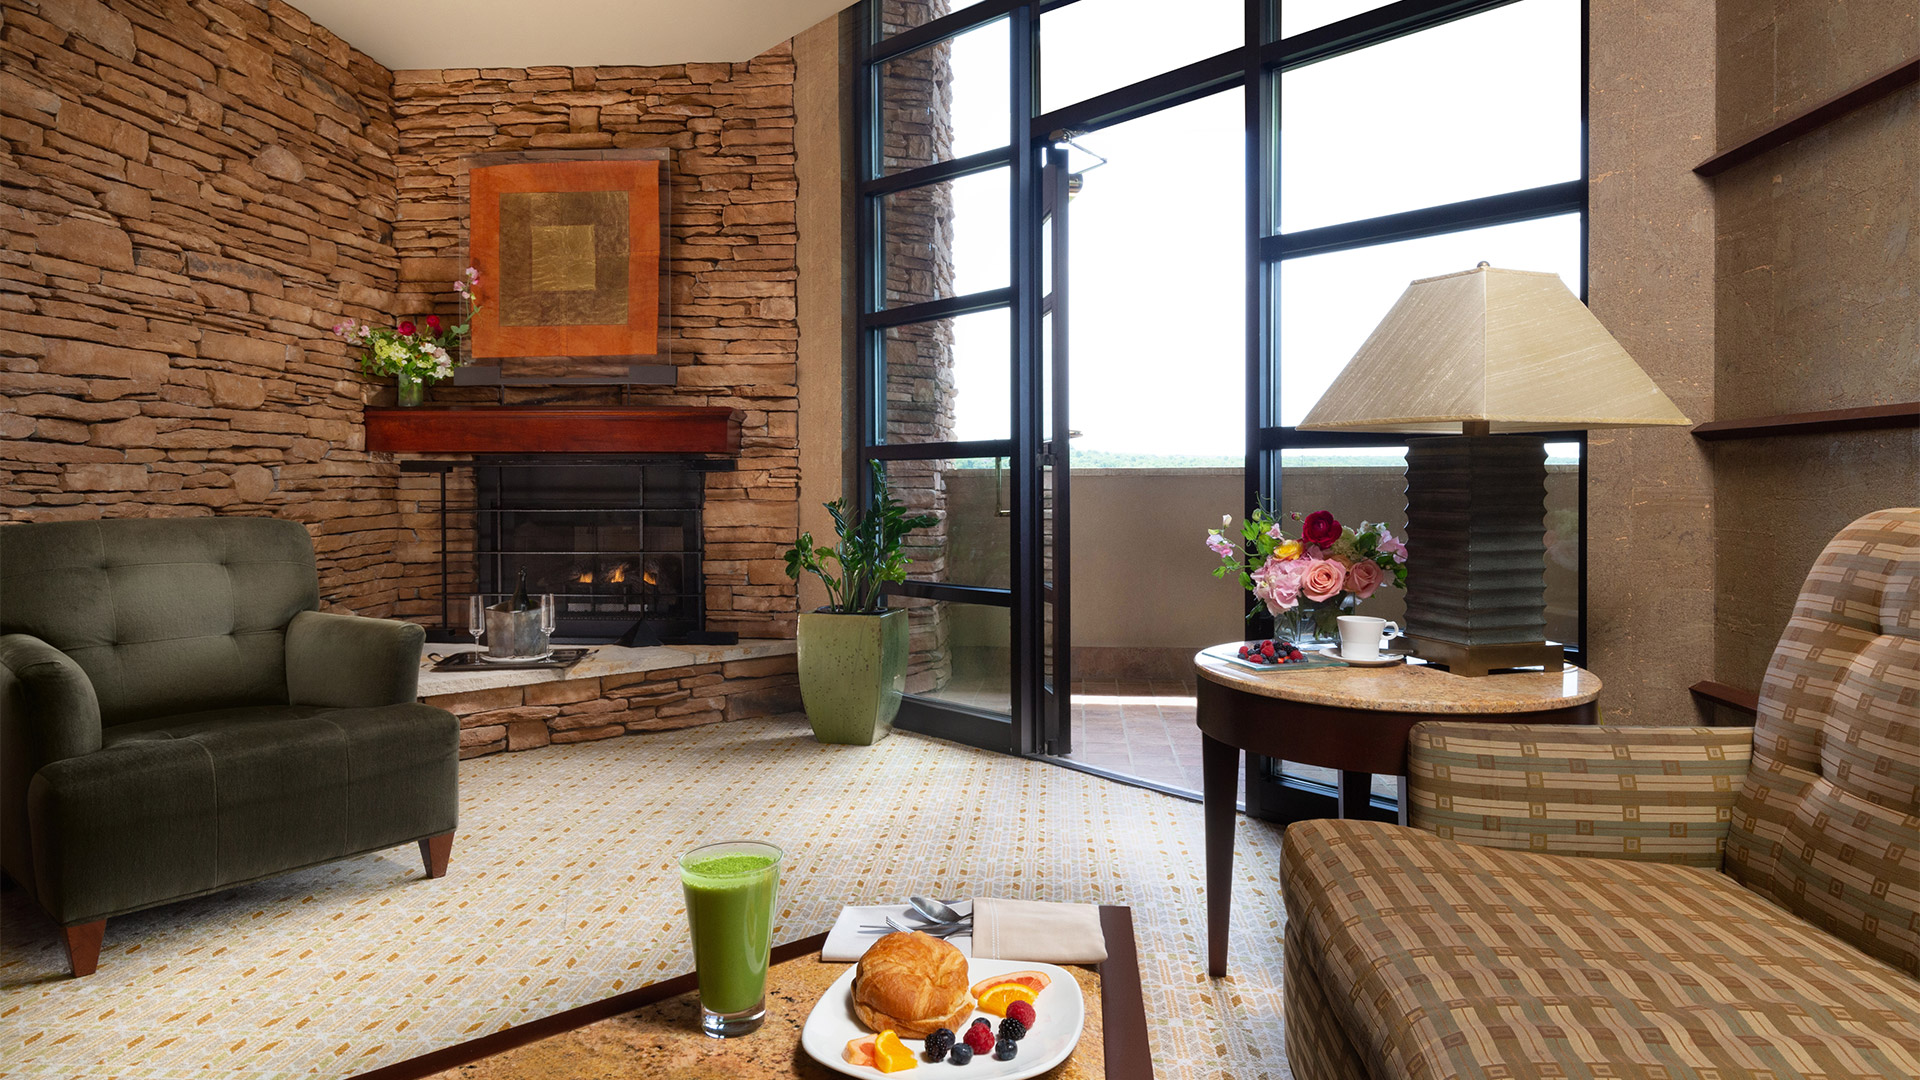 interior shot of Falling Rock's double suite living area. There is a couch and an arm chair around a coffee table with breakfast on it. There is a fireplace in the background and a door leading out onto a balcony